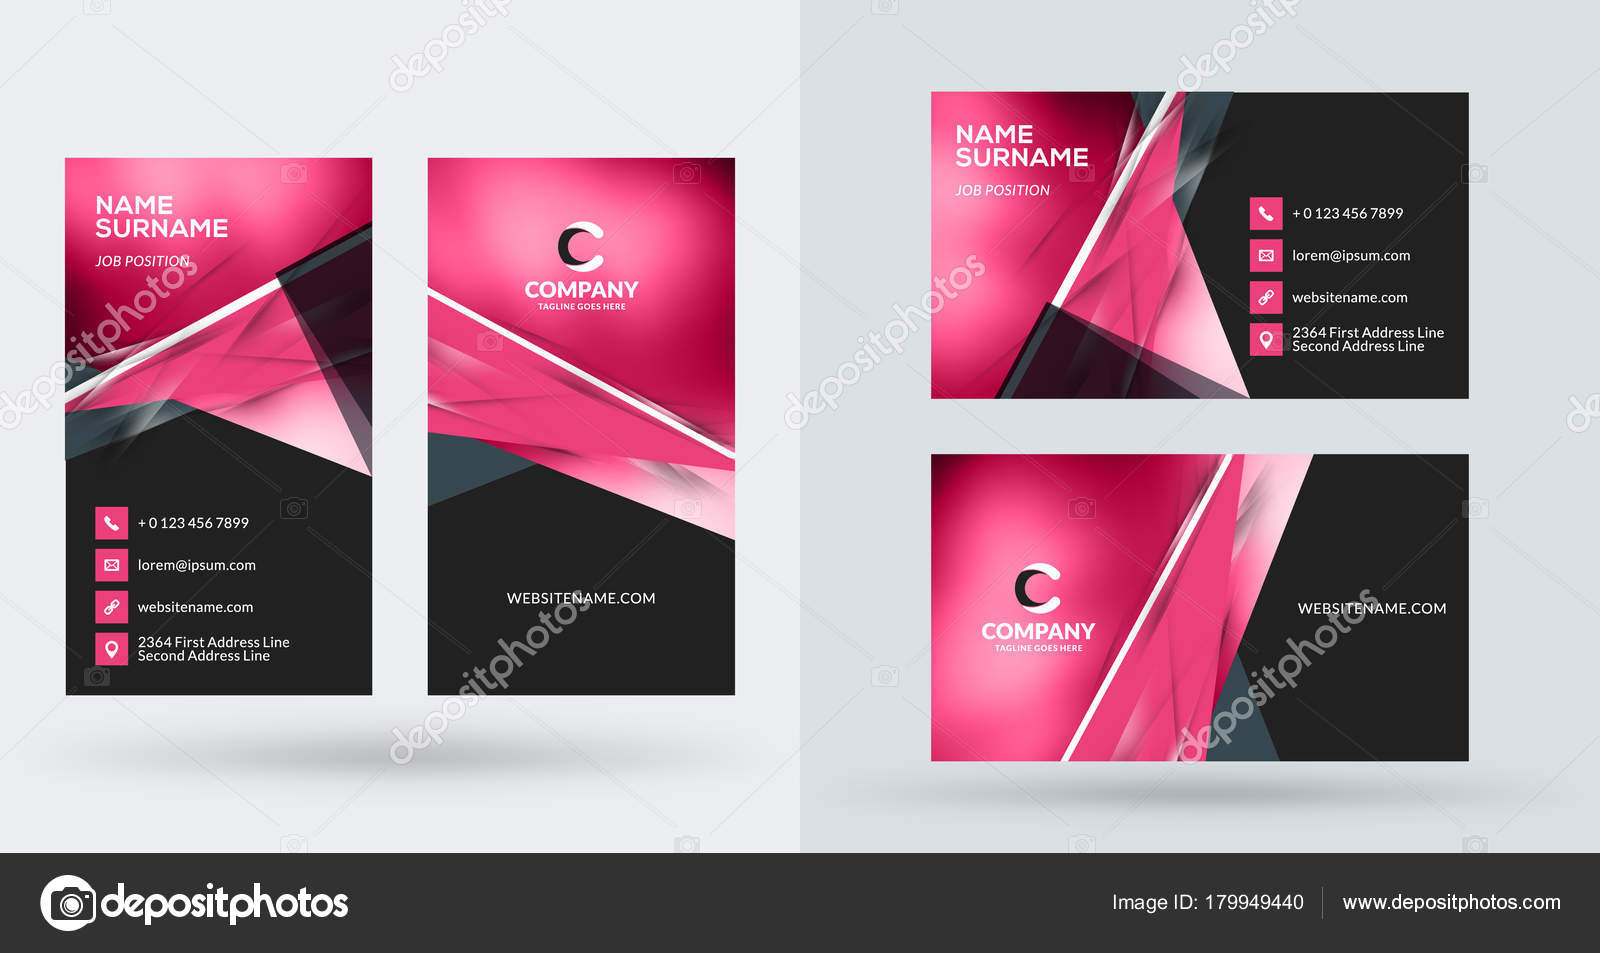 Double Sided Creative Business Card Template Portrait And Landscape Orientation Horizontal Vertical